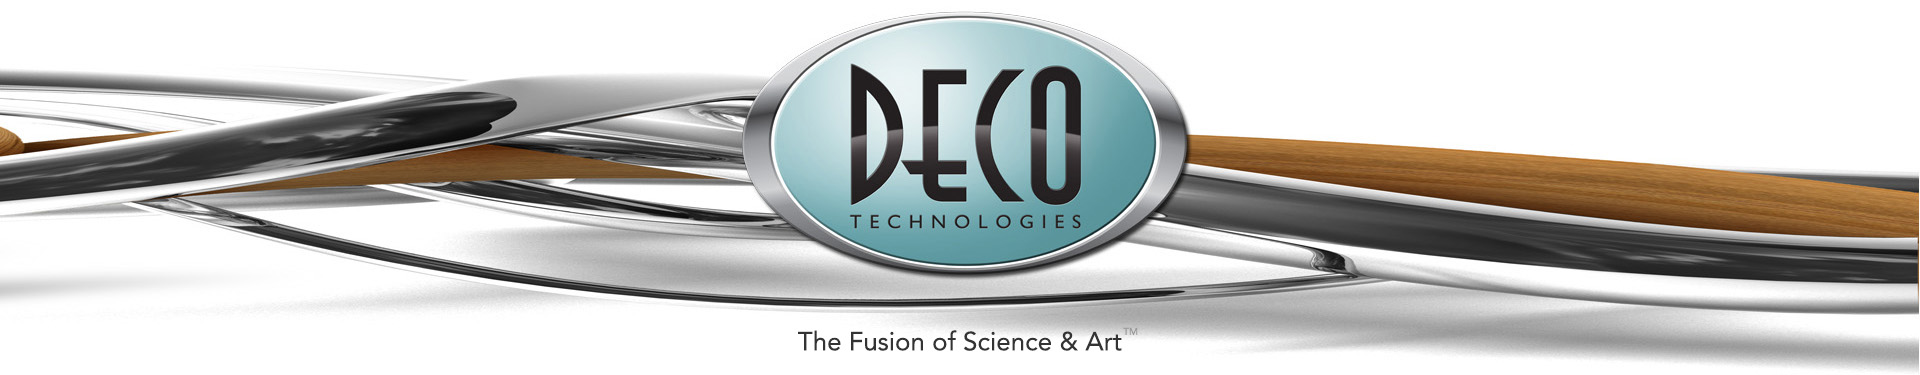 DECO Technologies Logo over twisted wood and chrome.